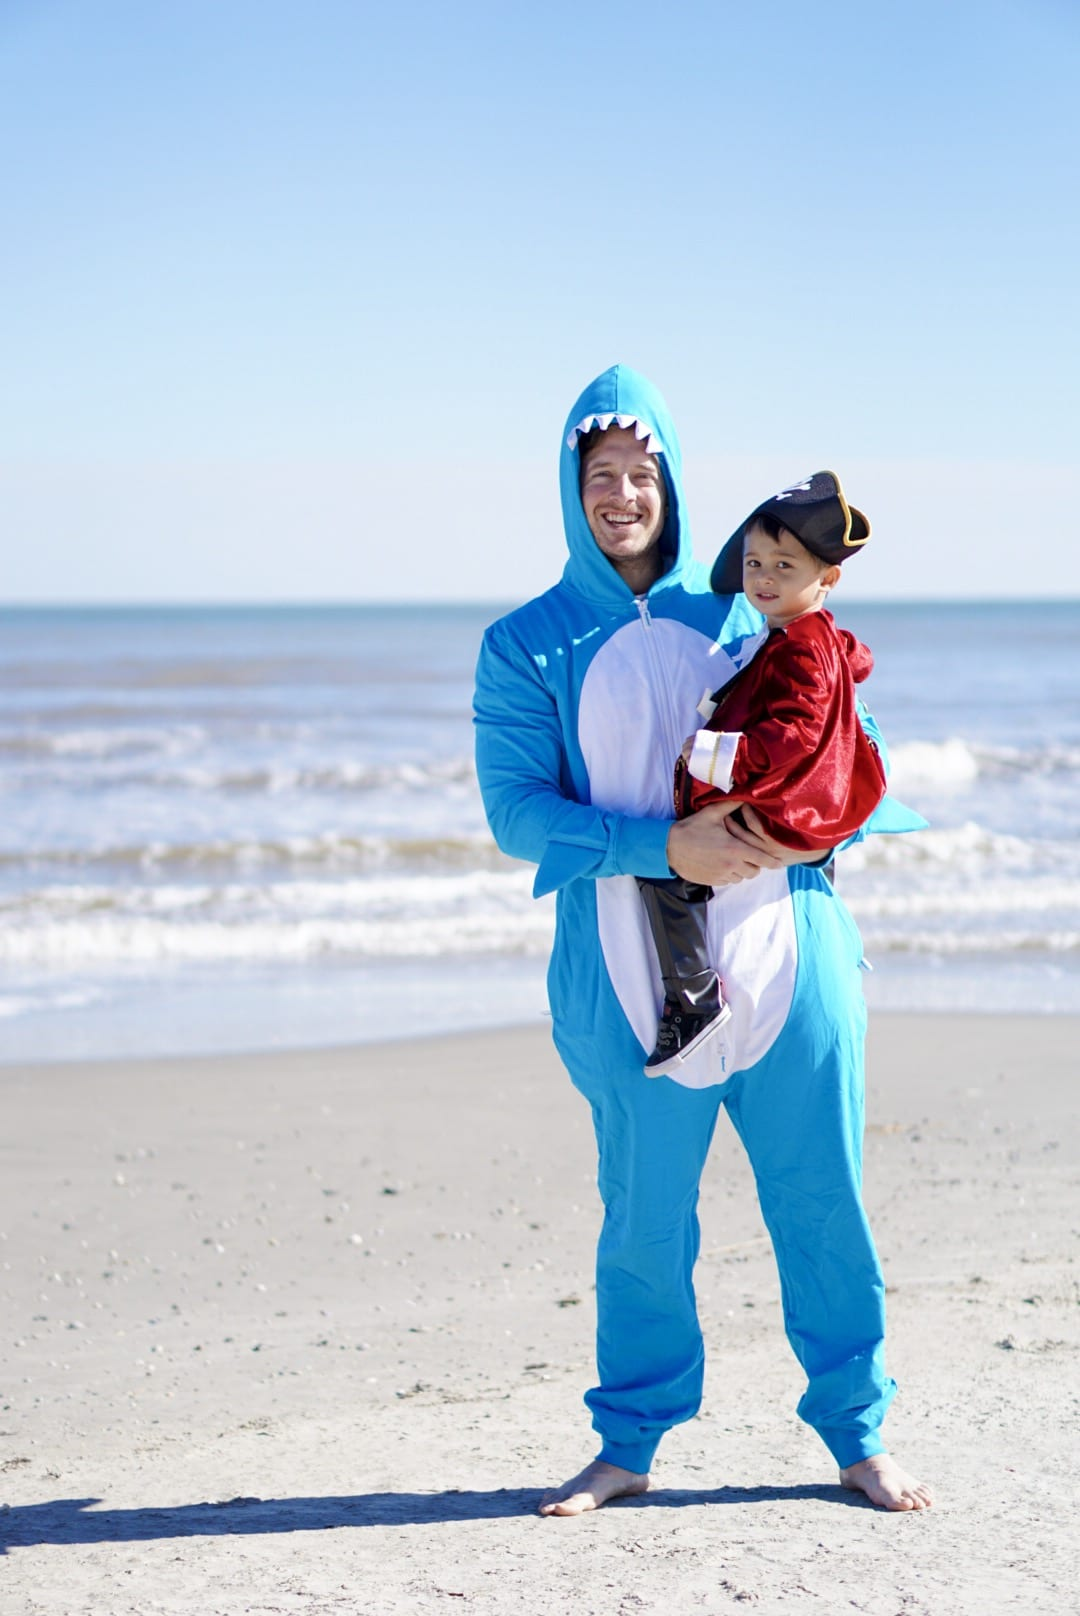 mermaid costume diy, halloween costume diy, family halloween costume, toddler costume, pirate costume, shark onsie, tipsy elves, adult onsie, adult costume, couples halloween costume,